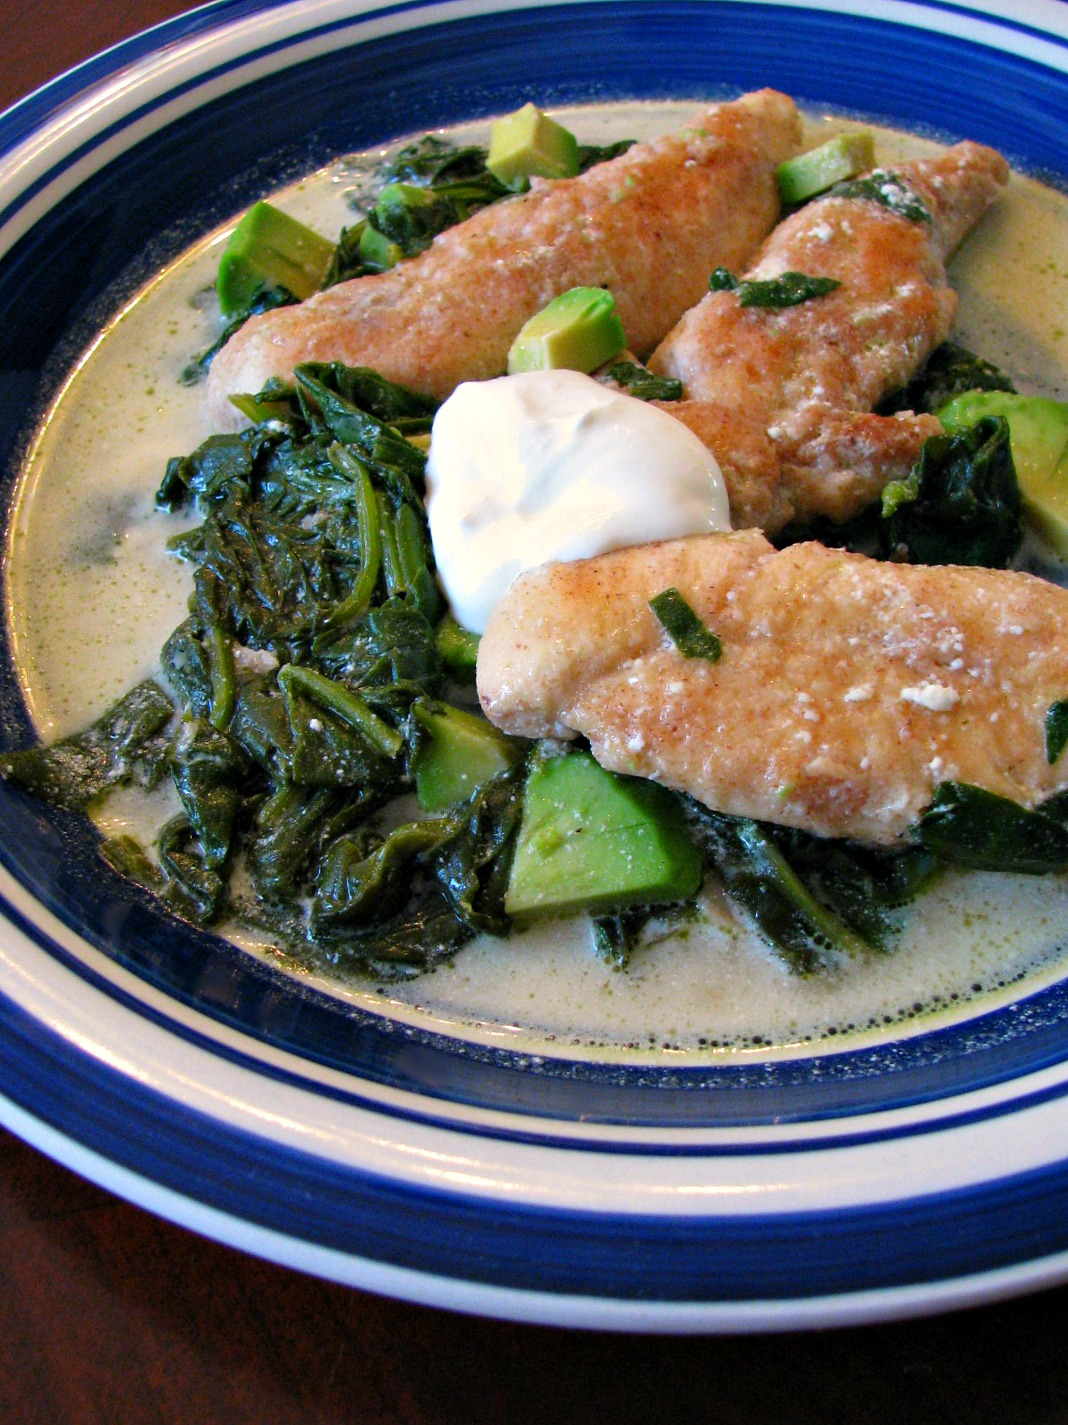 Skillet Chicken with Spinach and Avocado- Turn ordinary chicken tenders into a full meal your family will love with this Skillet Chicken with Spinach and Avocado! Tender chicken, sauteed spinach, diced avocado, simmered in chicken broth and finished with just a little bit of sour cream. Full of protein, iron, and healthy fats, this delicious dinner is ready in less than 30 minutes.